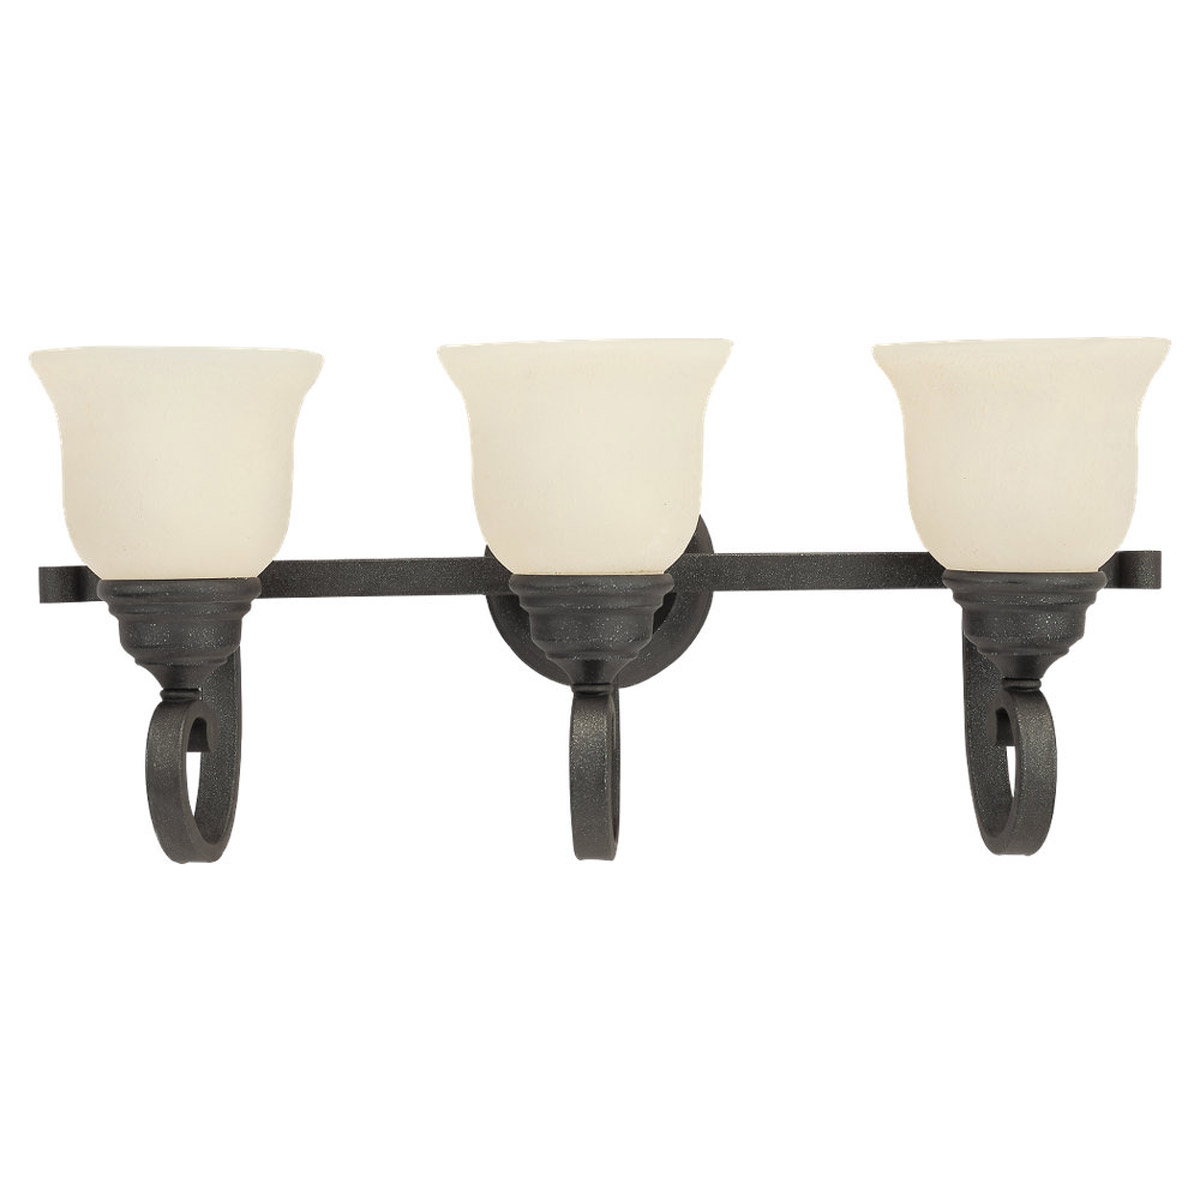 Sea Gull Lighting Serenity 3 Light Bath Vanity in Weathered Iron 44191-07 photo